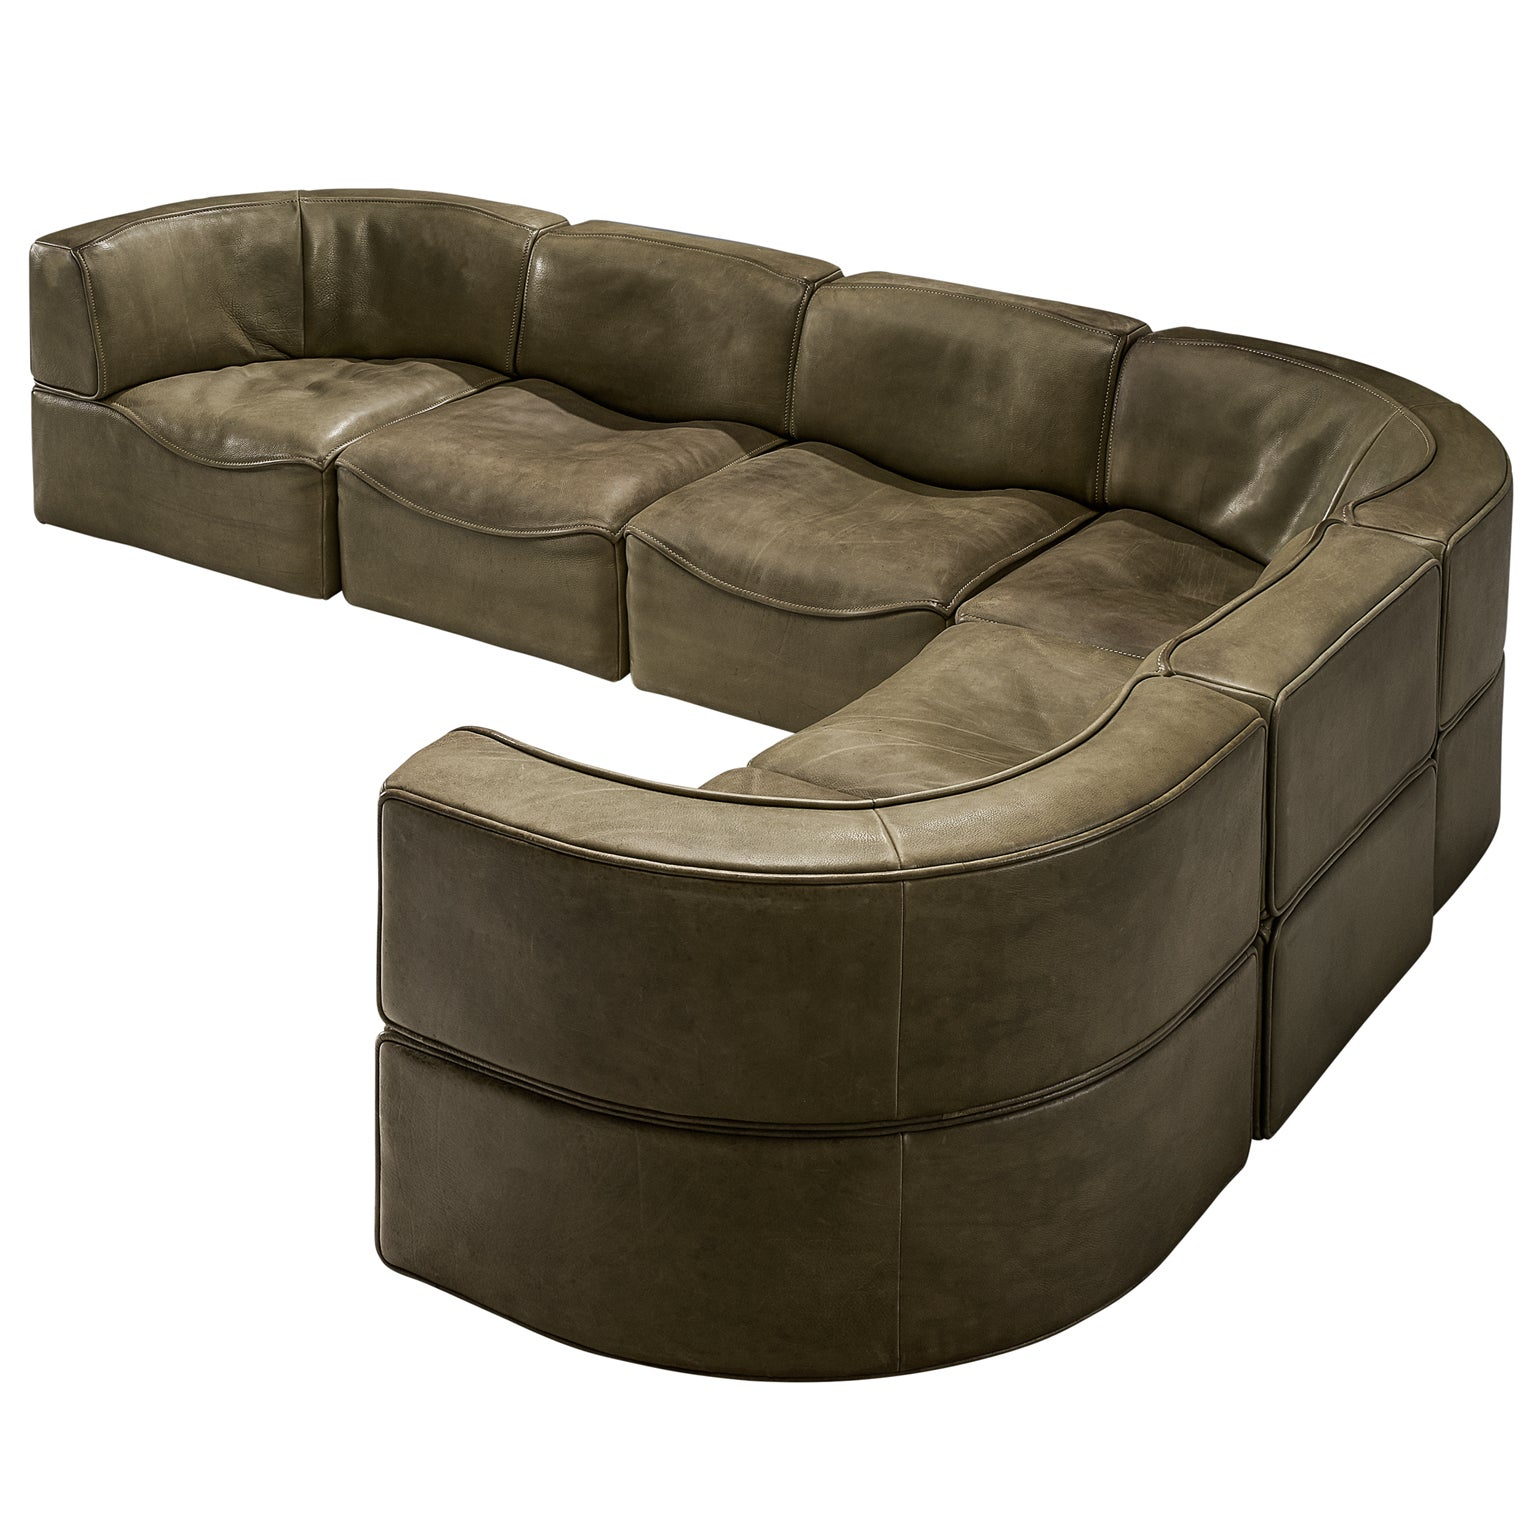 De Sede DS-15 Patinated Olive Green Sofa For Sale at 1stdibs